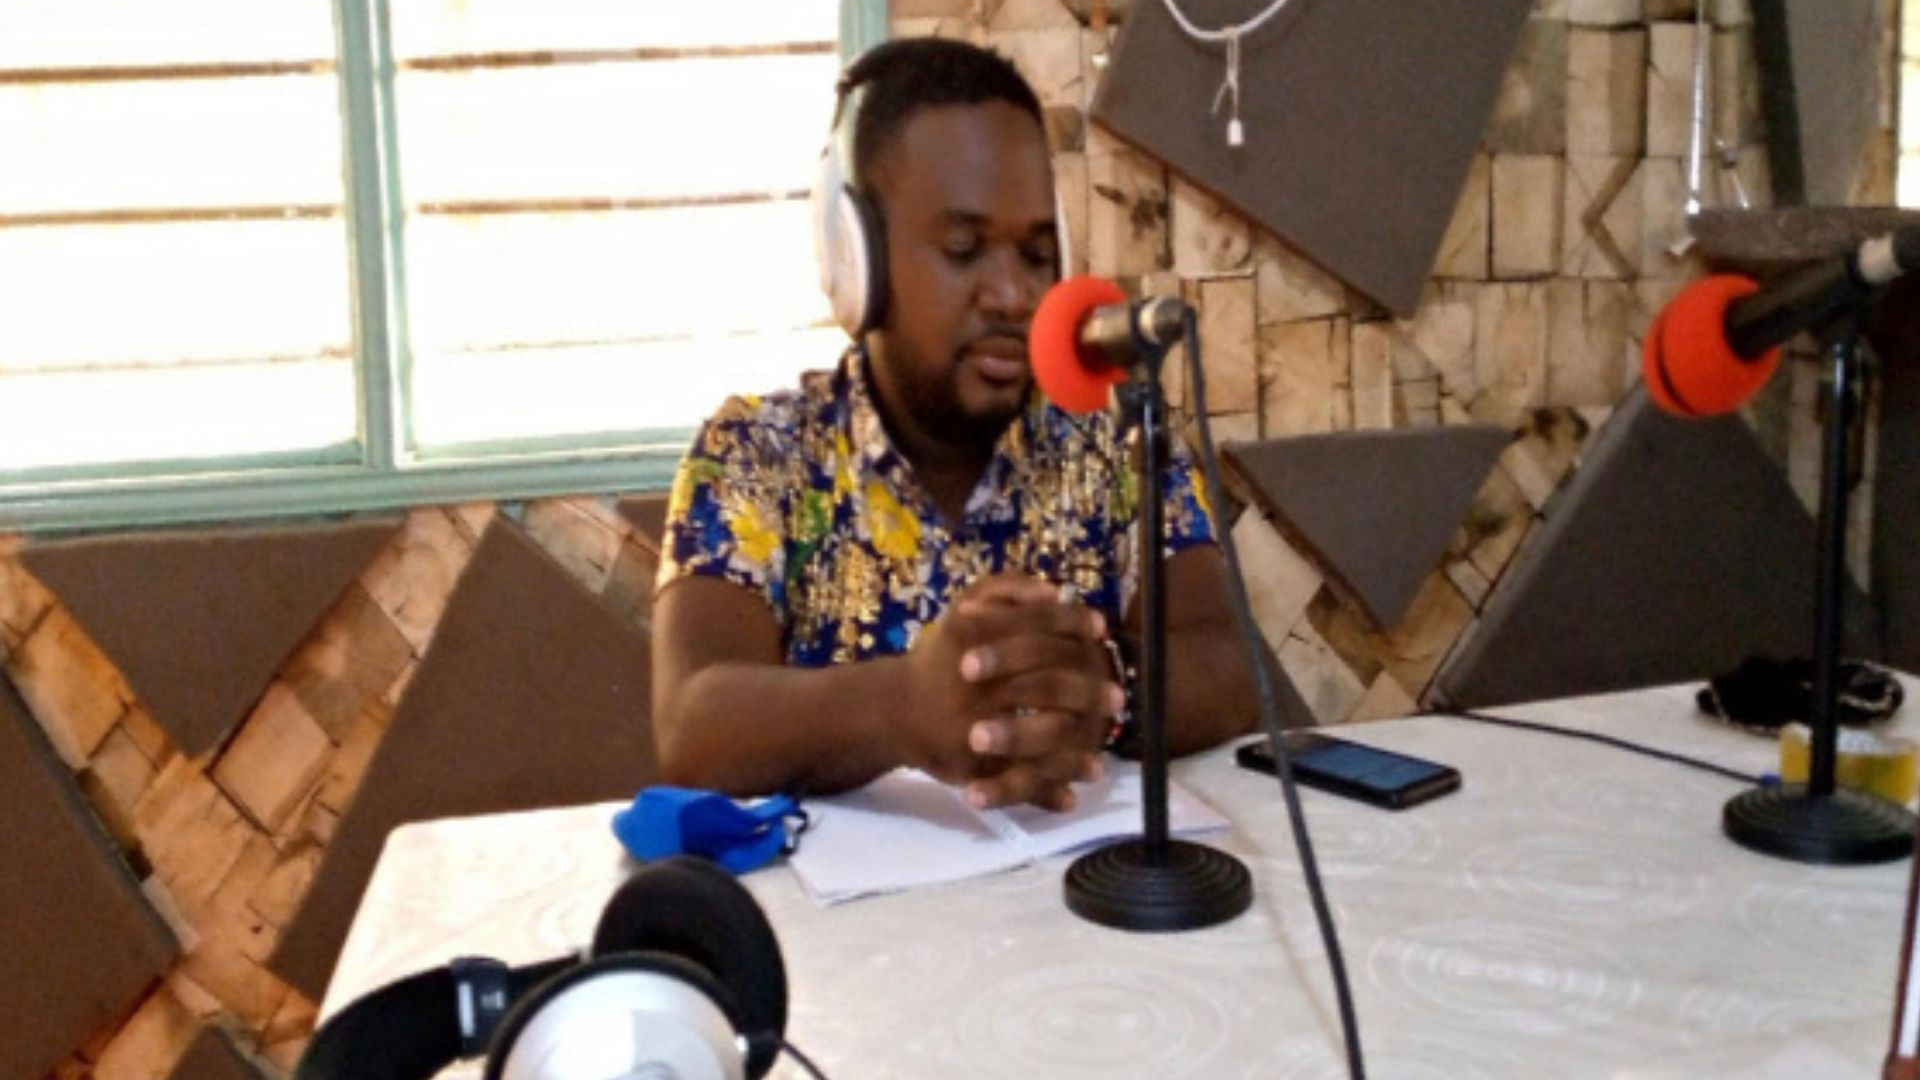 Radio show takes a Religious stance on FGM saying Stand Up for what is Right and End FGM